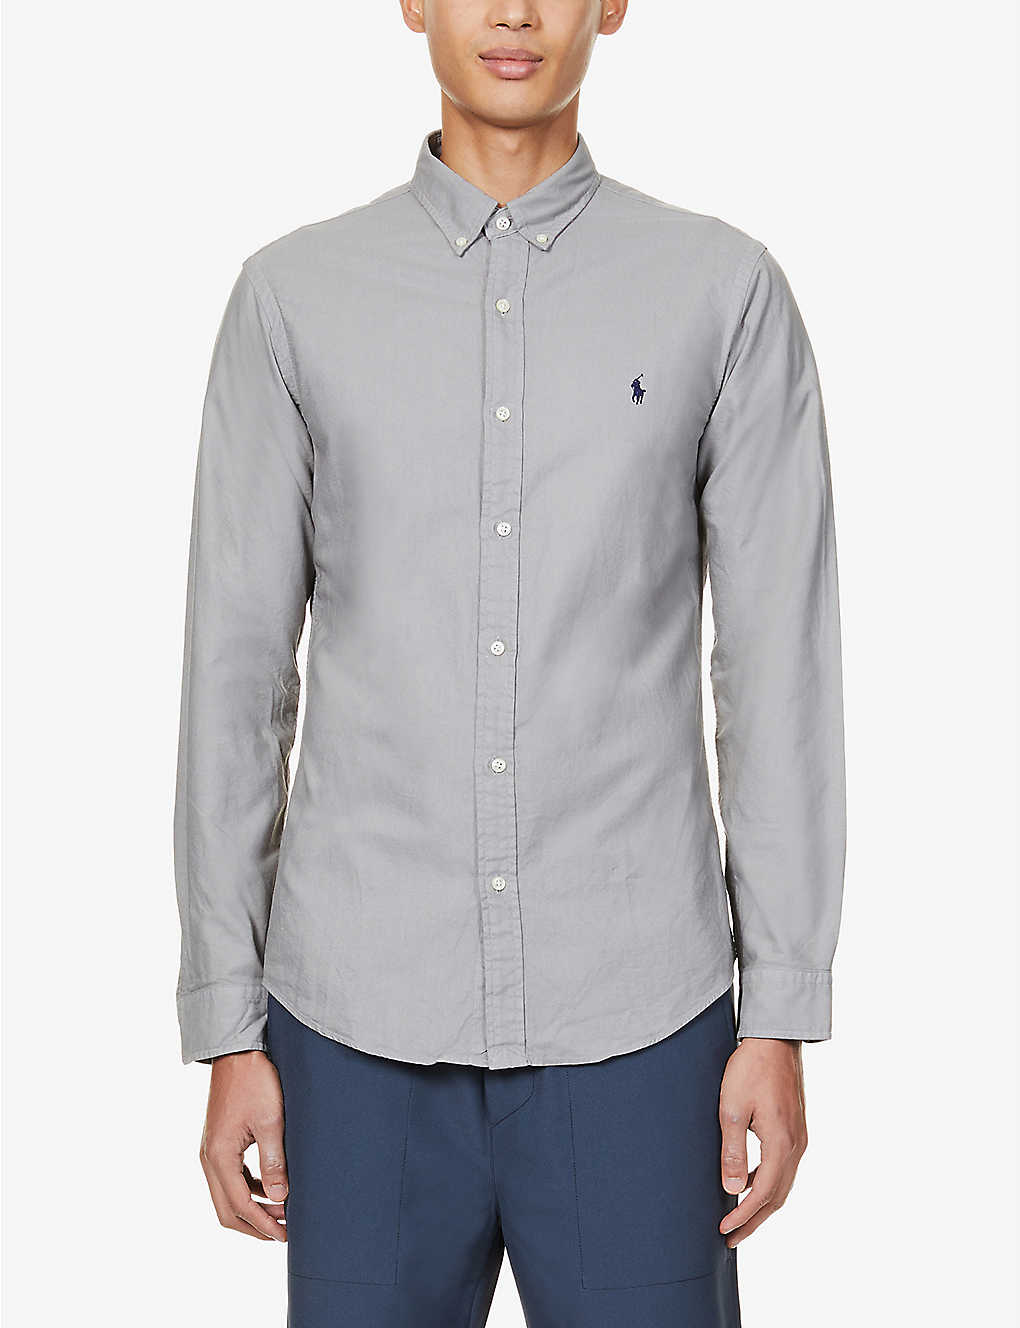 POLO RALPH LAUREN: Slim-fit cotton Oxford shirt